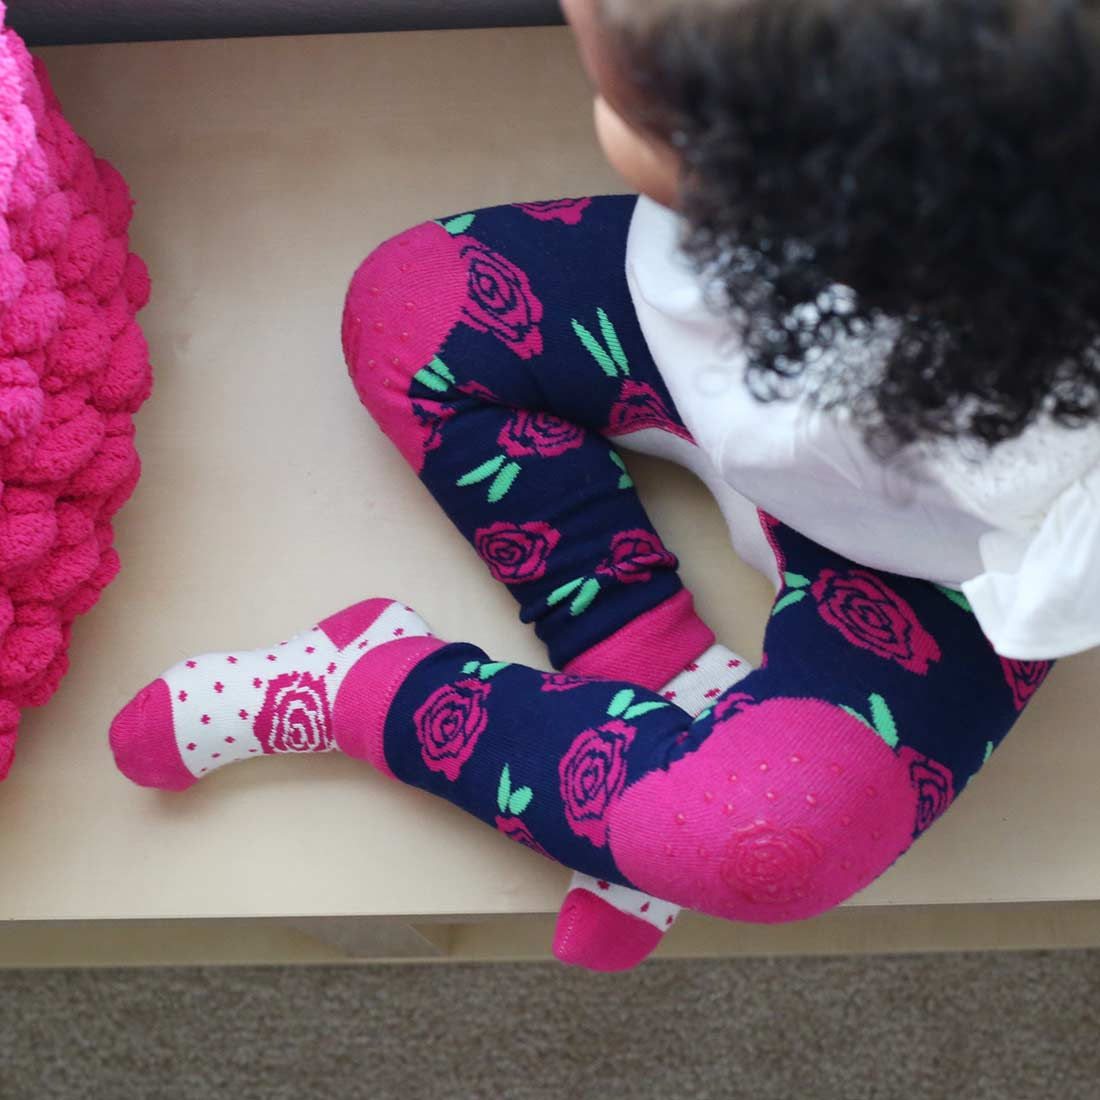 Fun Colorful Characters 6-18 Months ZOOCCHINI Baby Non-Skid Comfort Crawler Leggings /& Socks Set